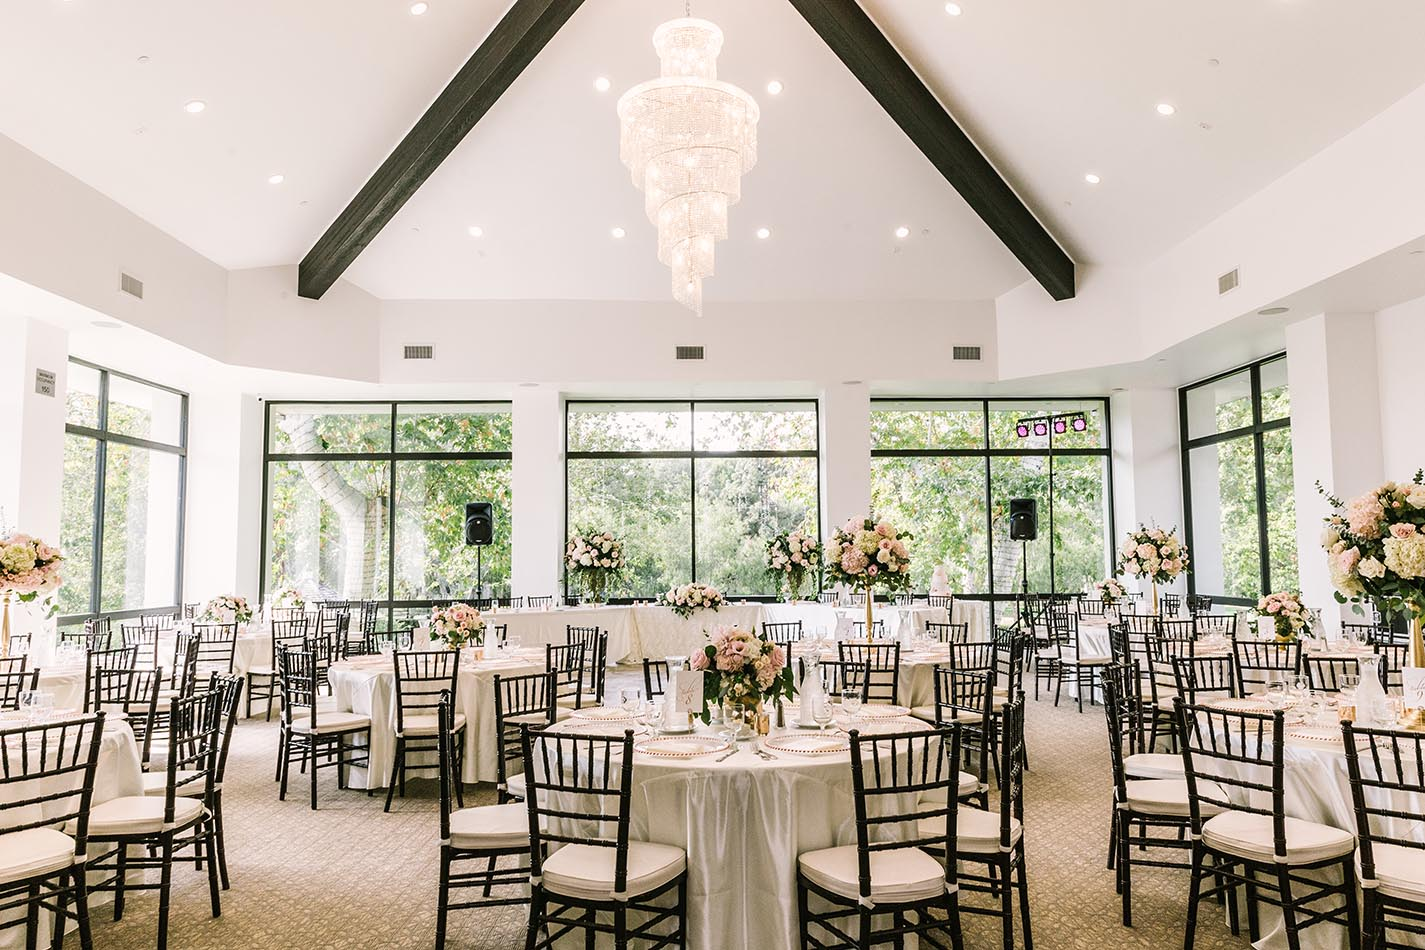 Your private reception is one-of-a-kind. Featuring vaulted ceilings, a stunningly luxurious crystal chandelier, floor-to-ceiling windows and incredible views, you'll find this to be a picture-perfect space for your celebration.